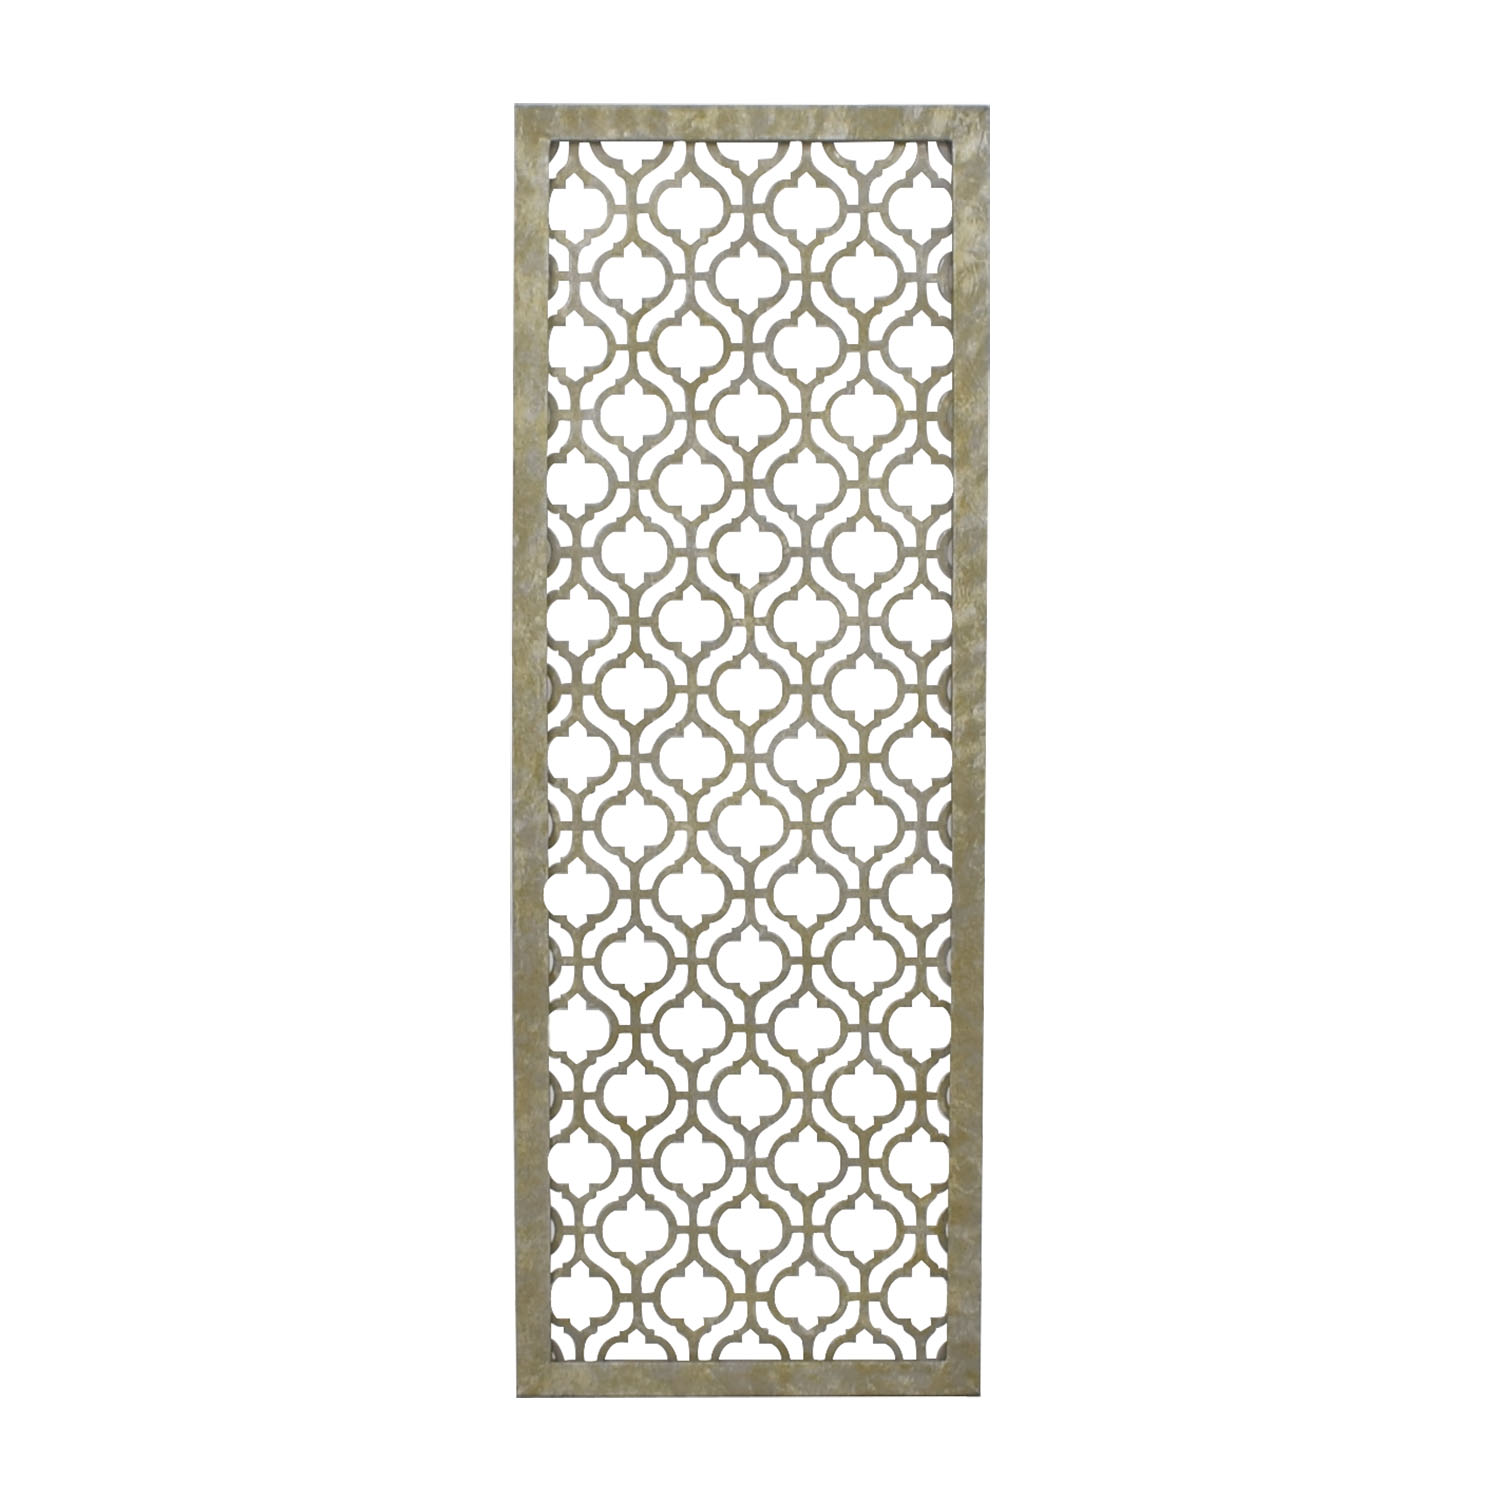 Pier 1 Imports Pier 1 Imports Trellis Metal Wall Panel on sale